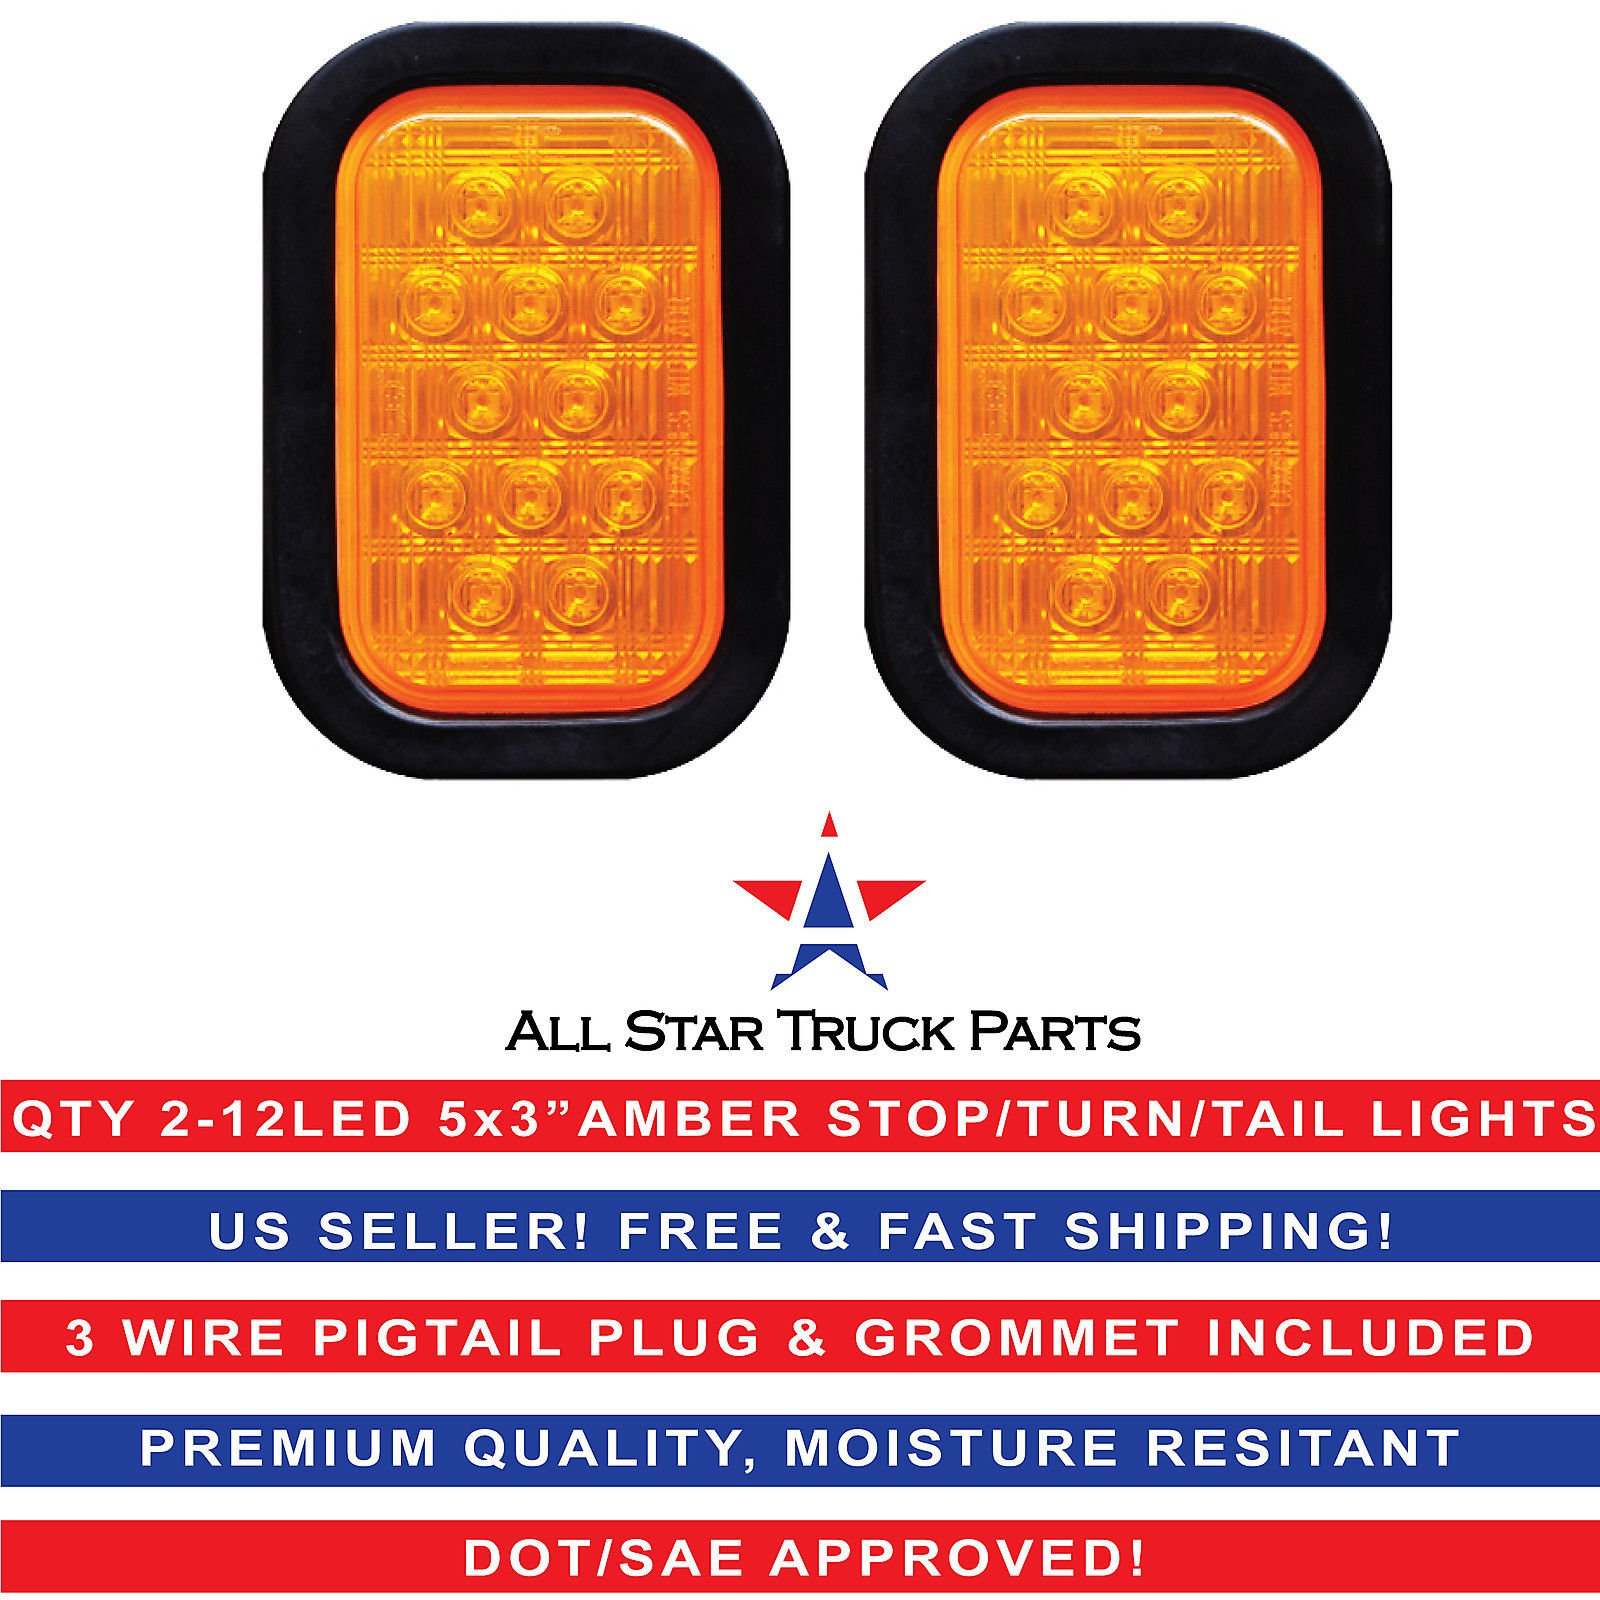 Qty 2-5x3'' Amber Rectangle 12 LED Stop/Turn/Tail Fender Truck Light Grommet & Pigtail